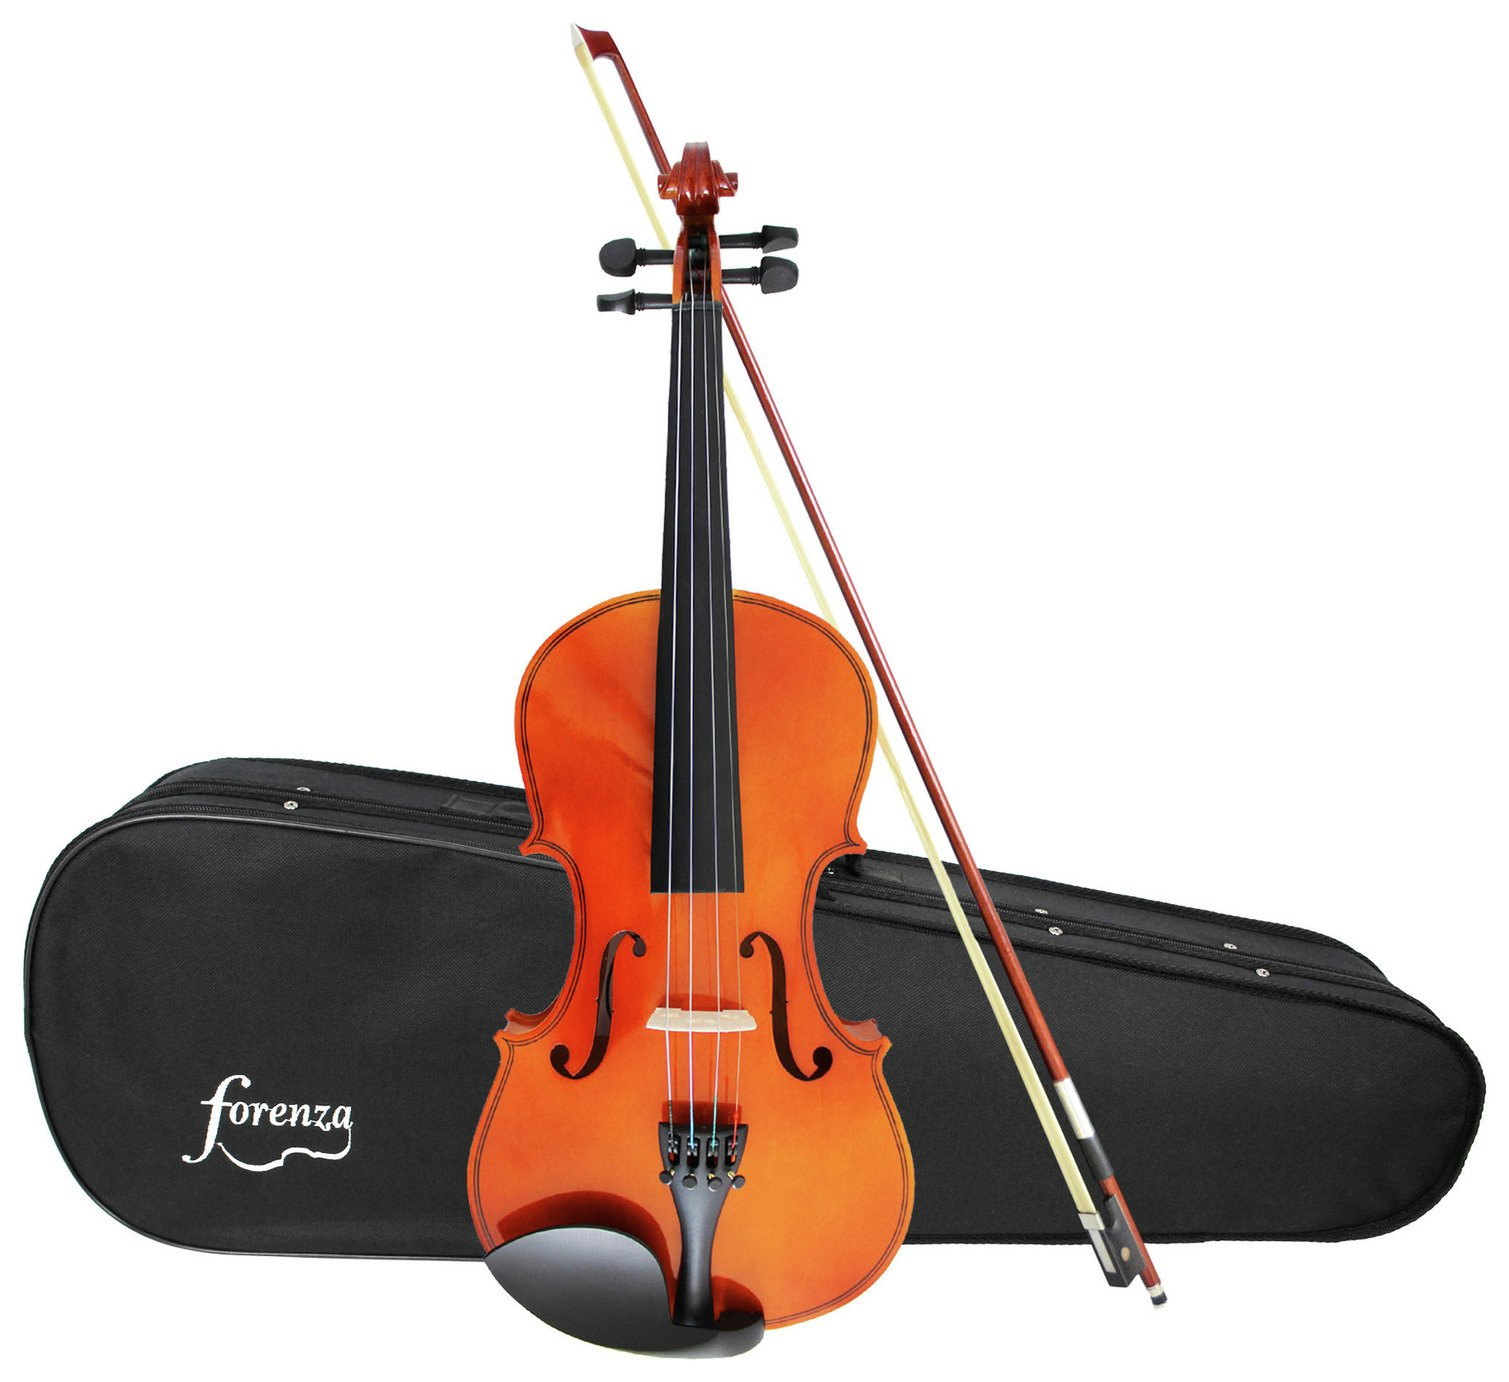 Image of Forenza - Uno - Series 3/4 Violin Outfit